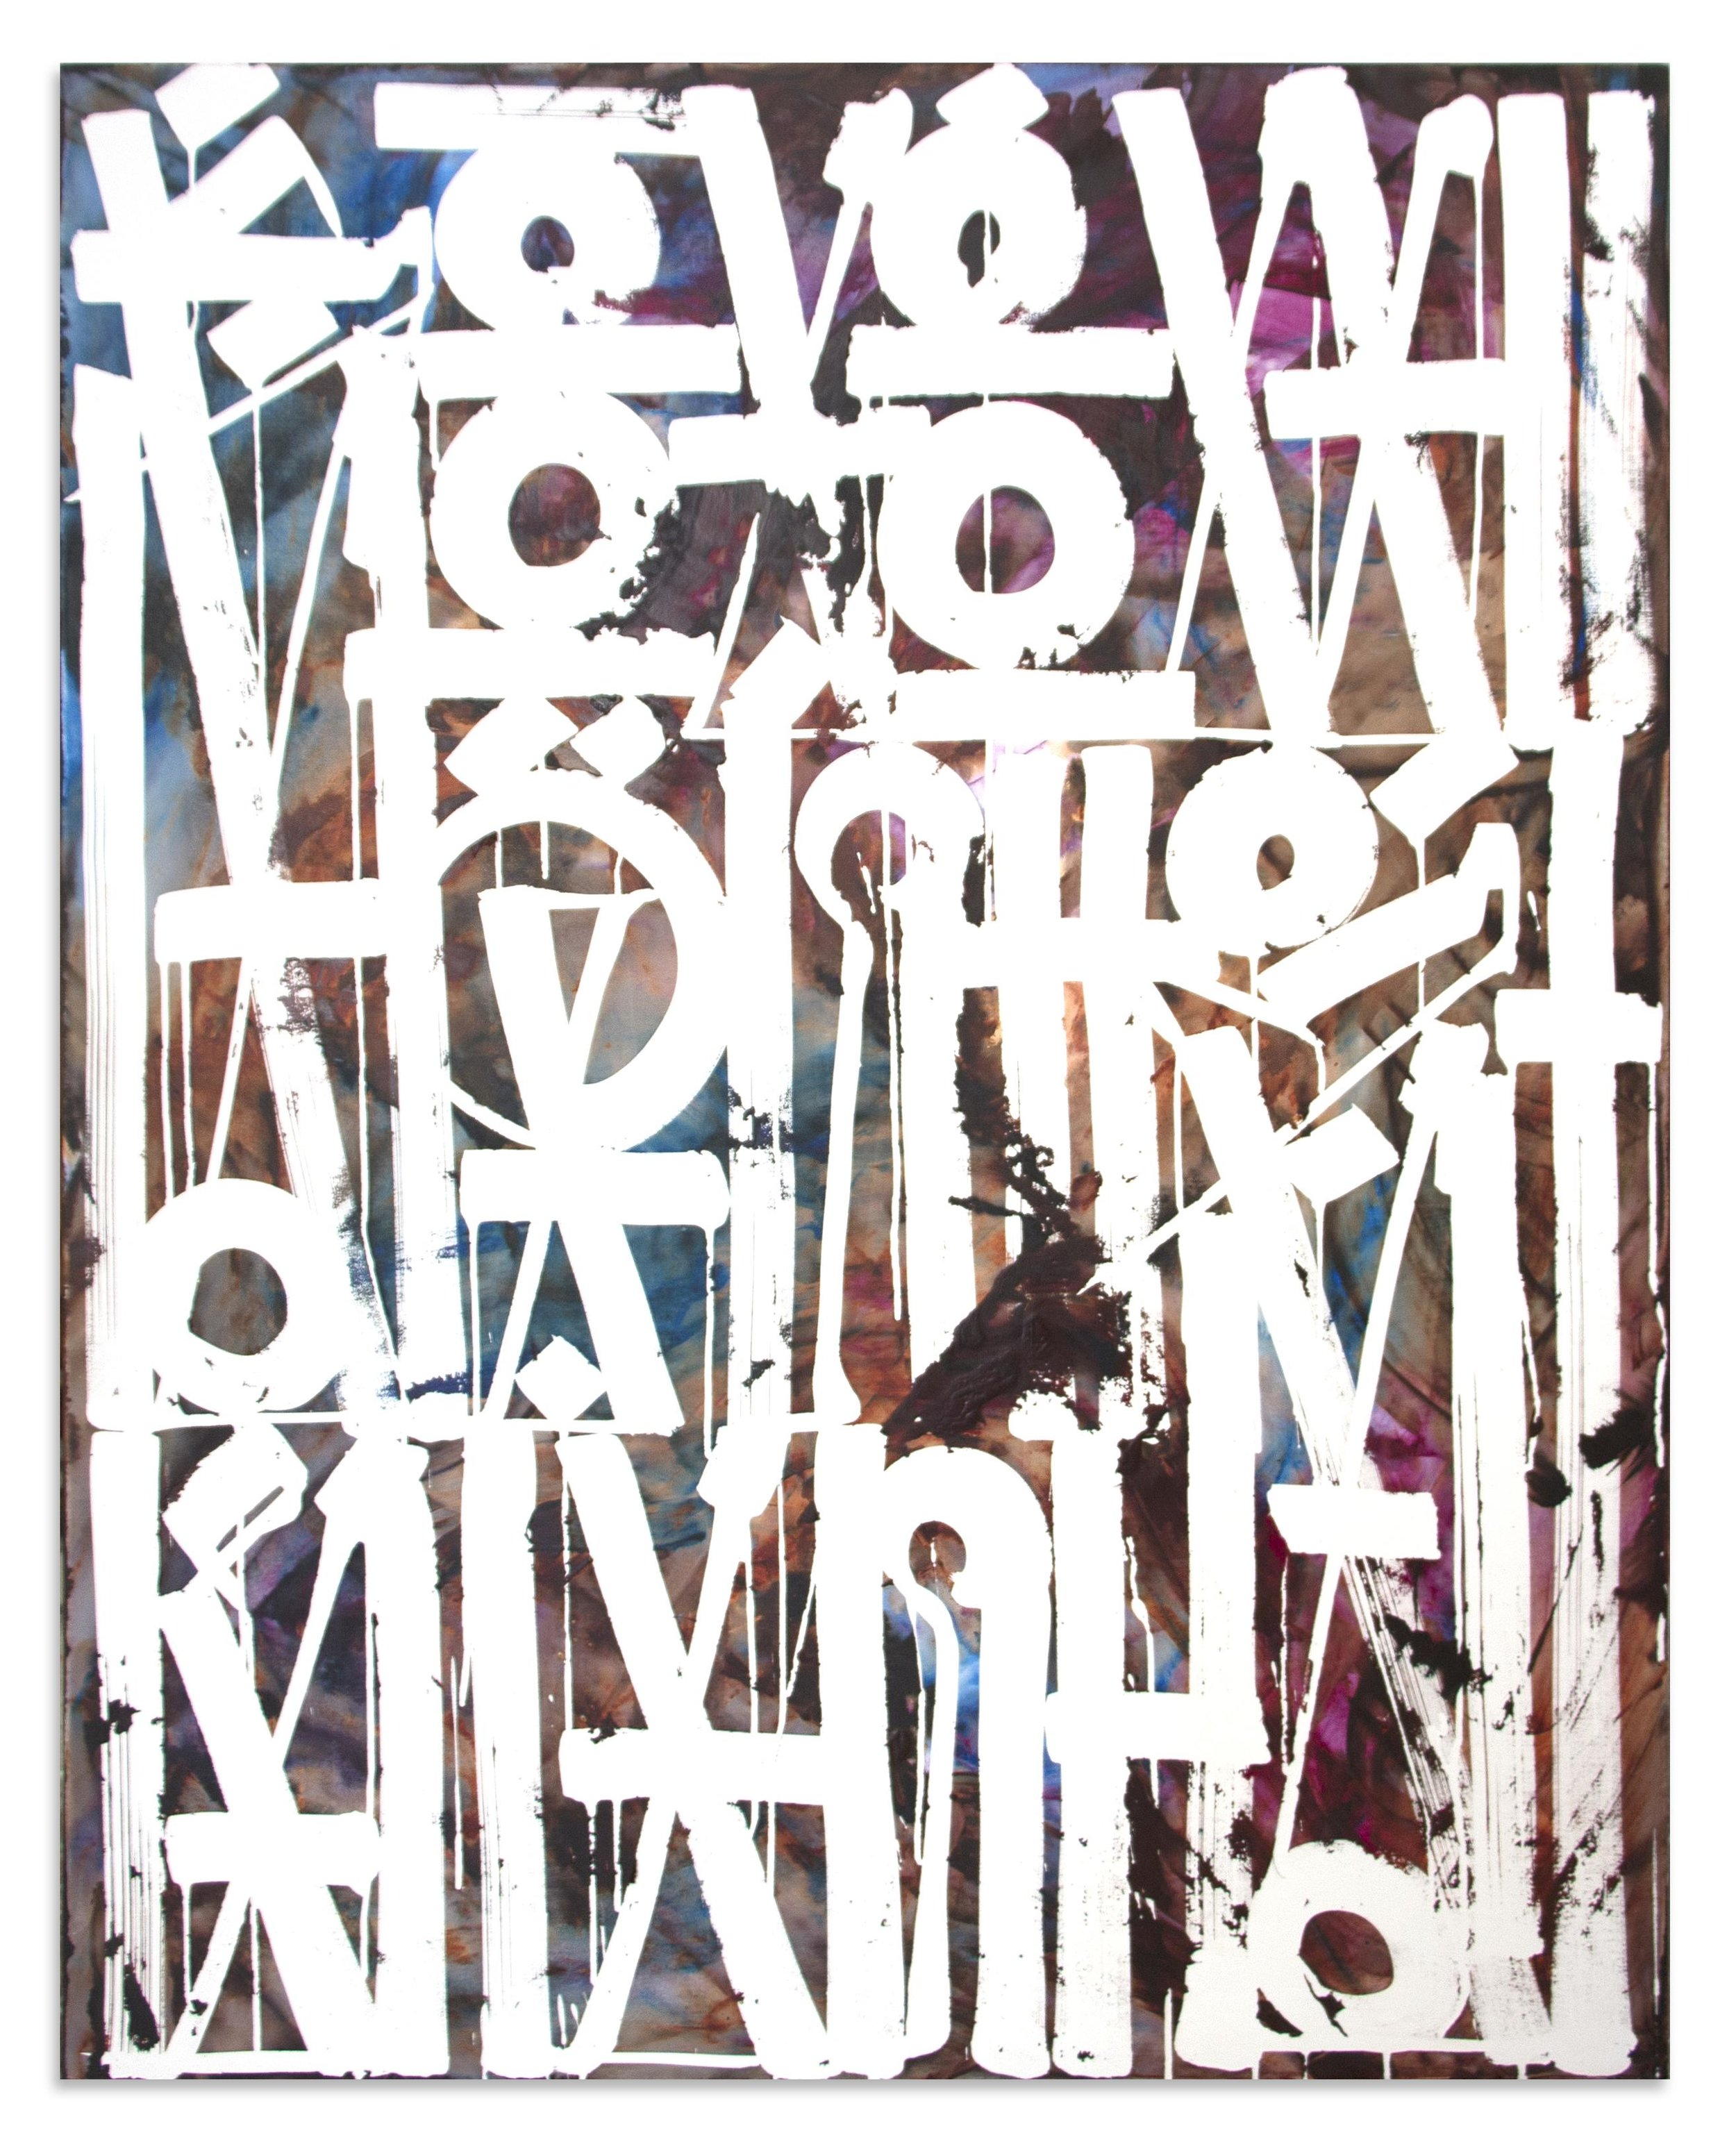 RETNA-So_You_Wanted_To_Run-122x96-Acrylic_On_Canvas.jpg